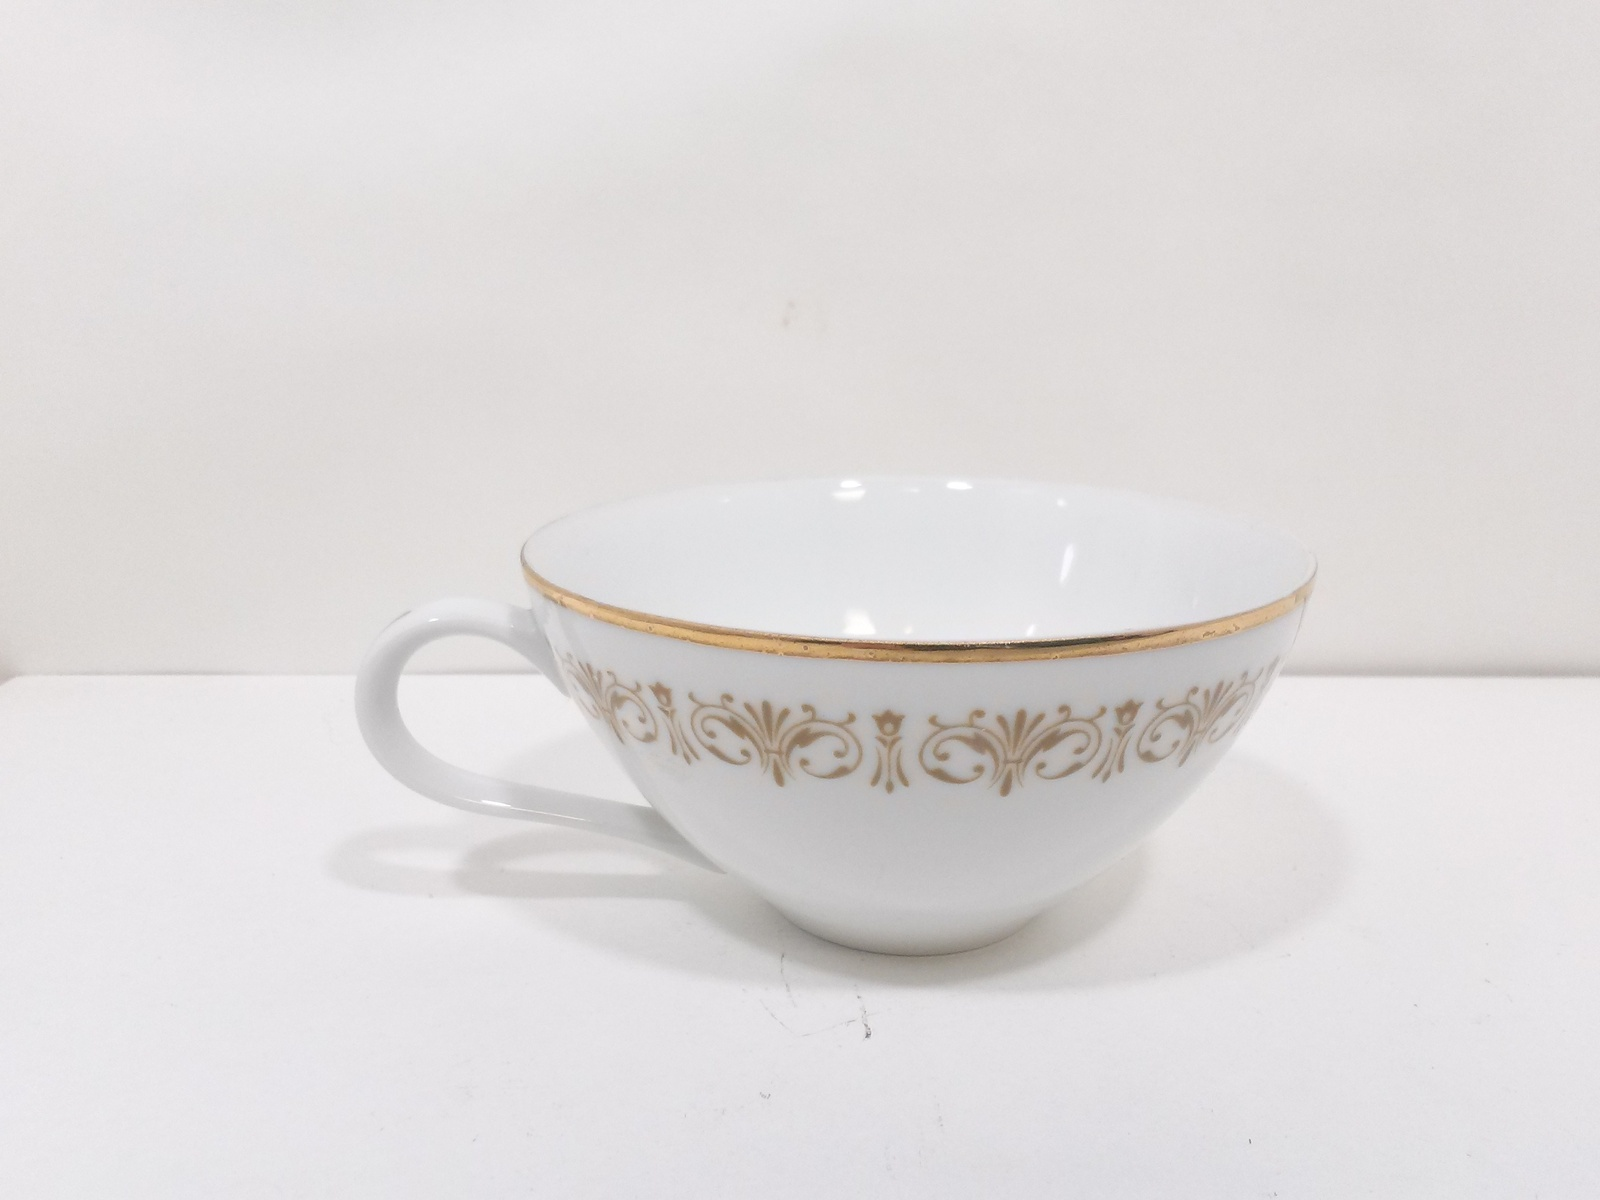 Primary image for Japan Sheffield Imperial Gold China Tea Cup #504 Fine China